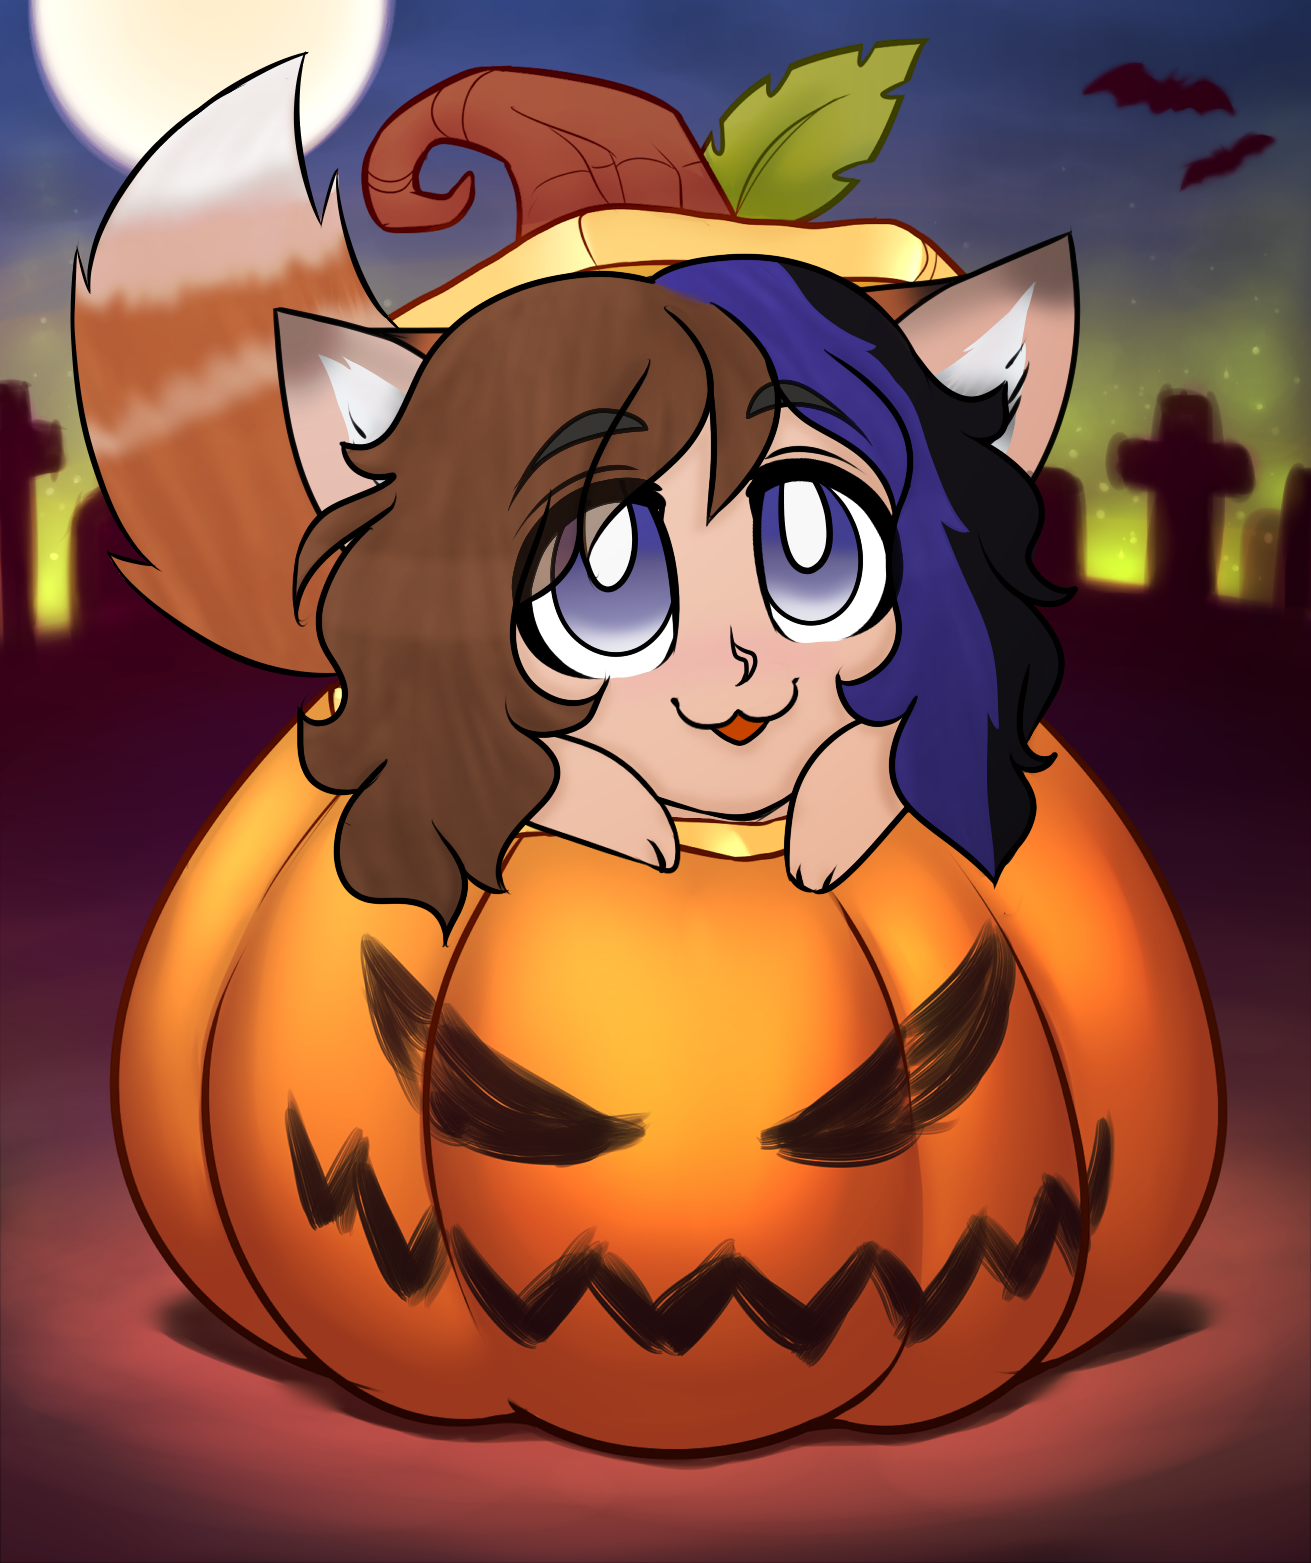 Art Trade/Commission YCH Pumpkin by RoseandherThorns